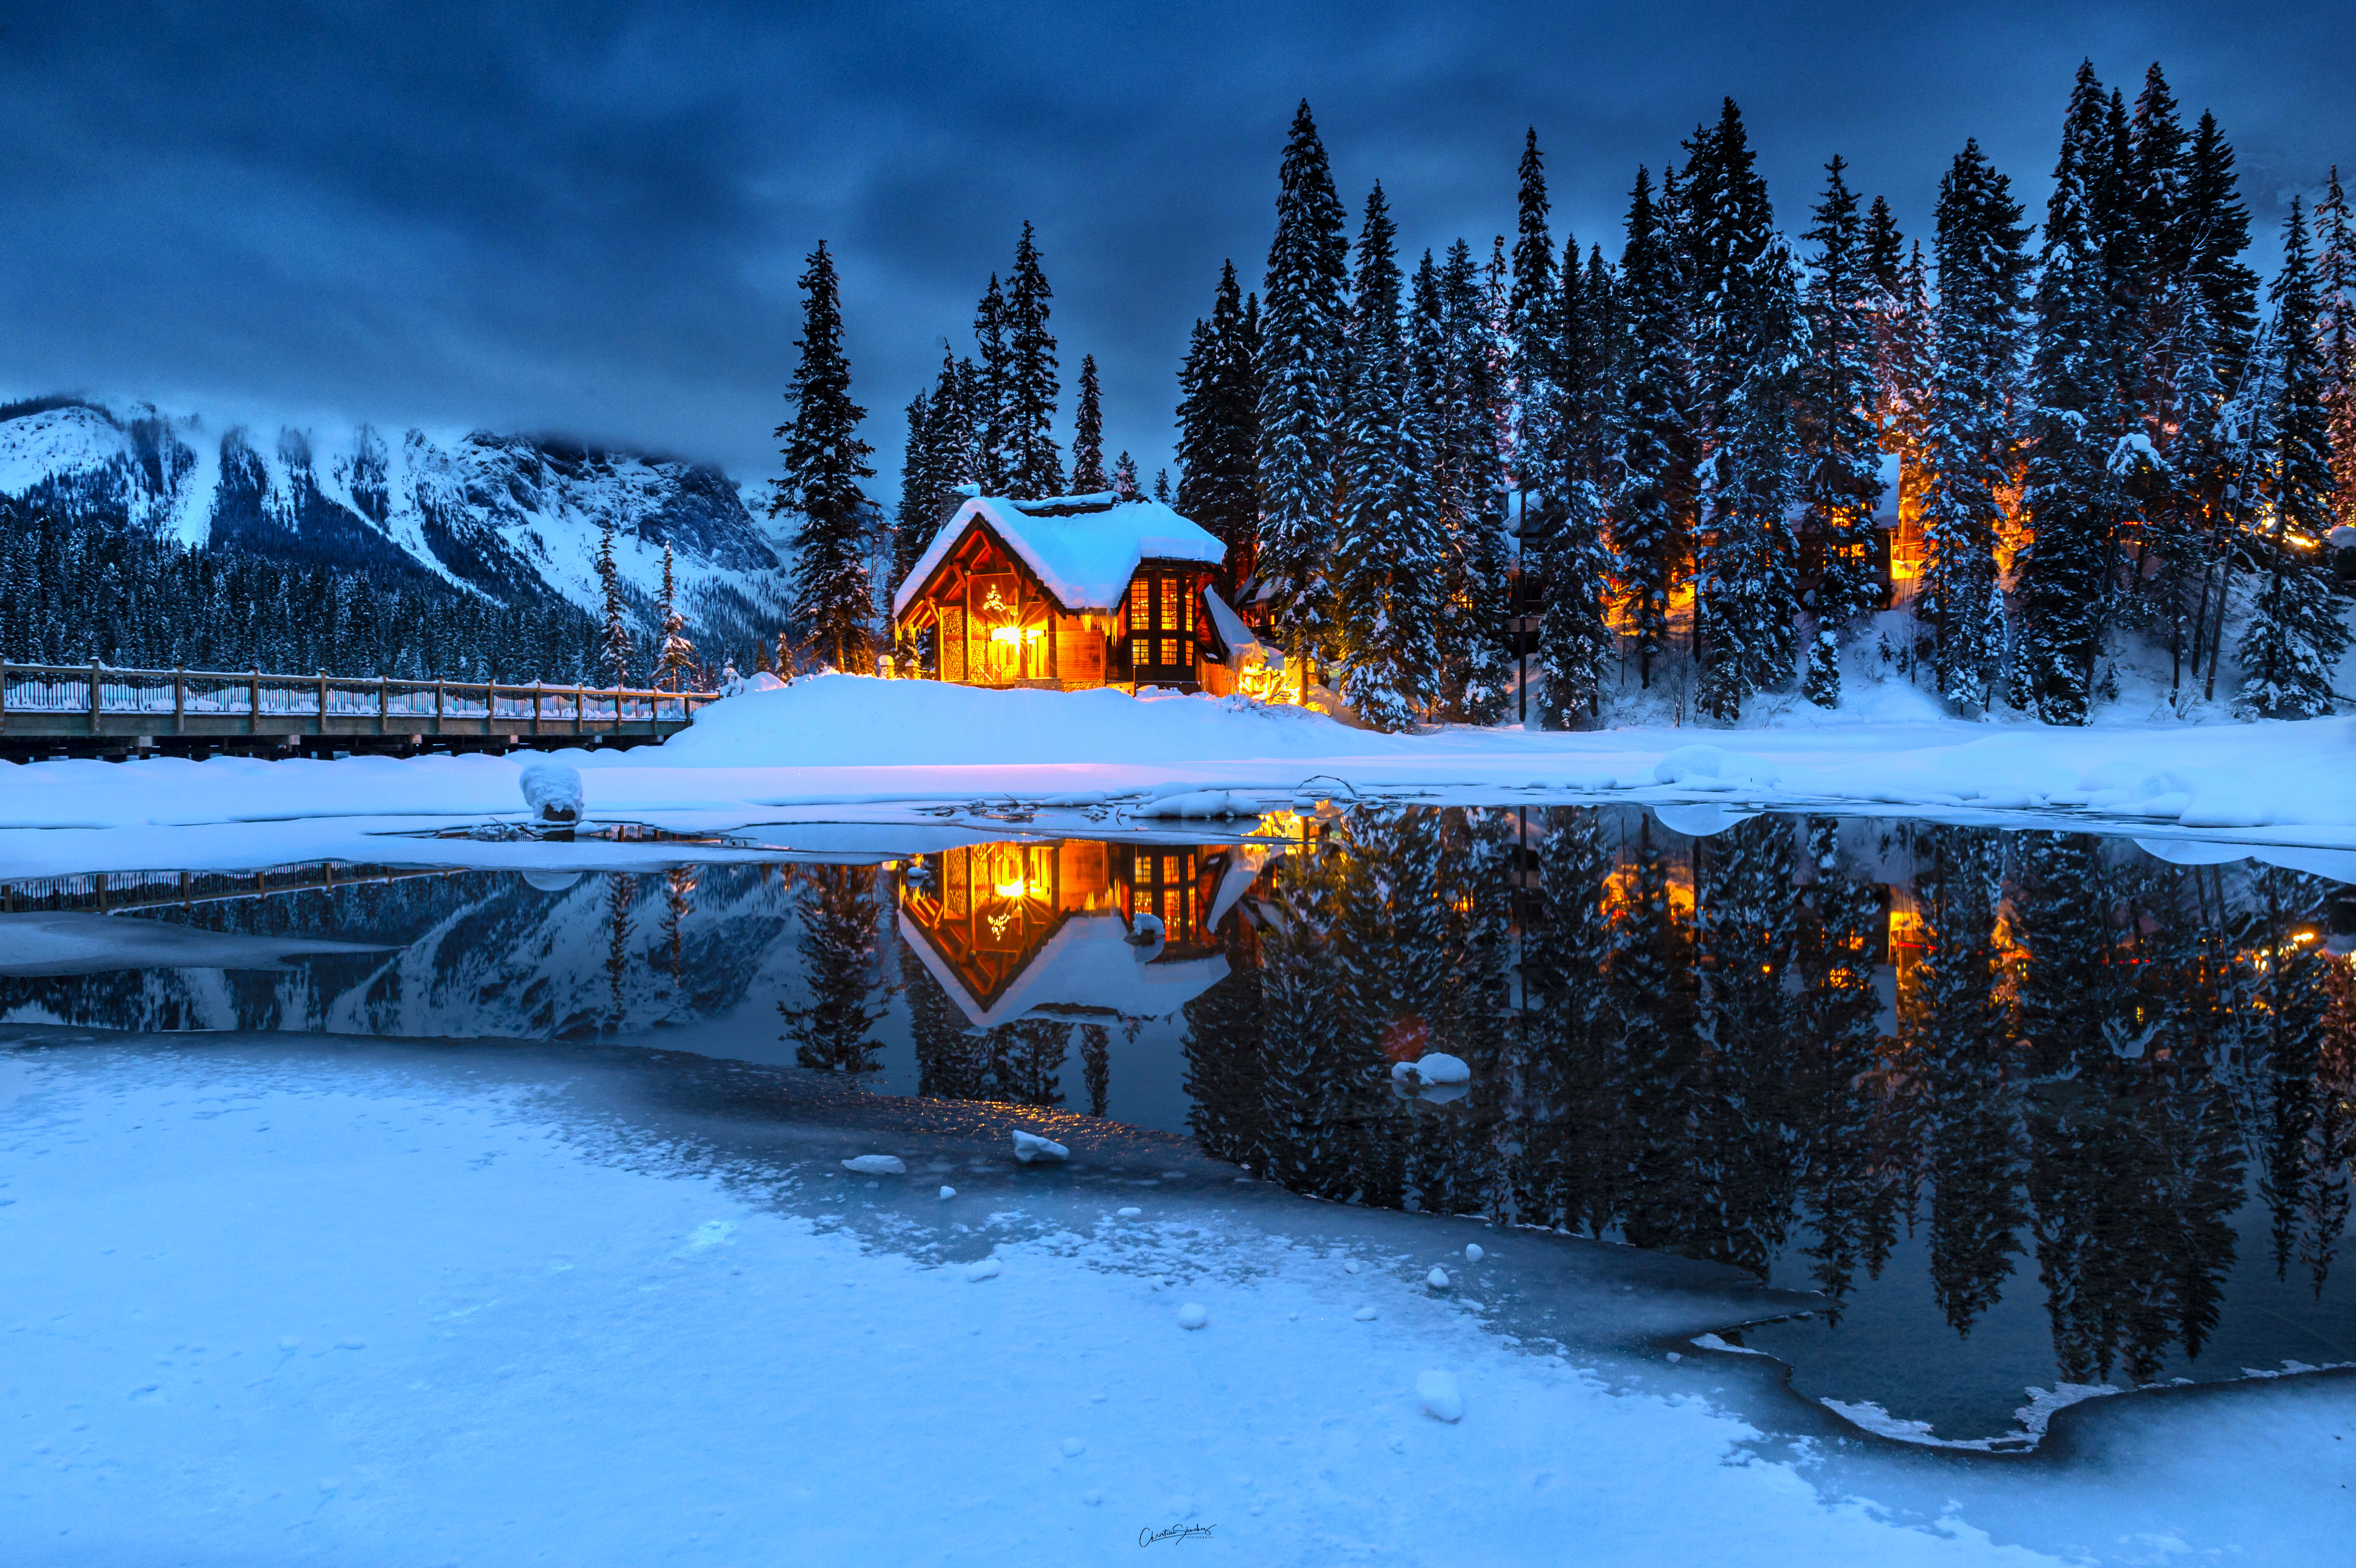 General 6144x4090 winter cabin night house lake water trees snow landscape pine trees